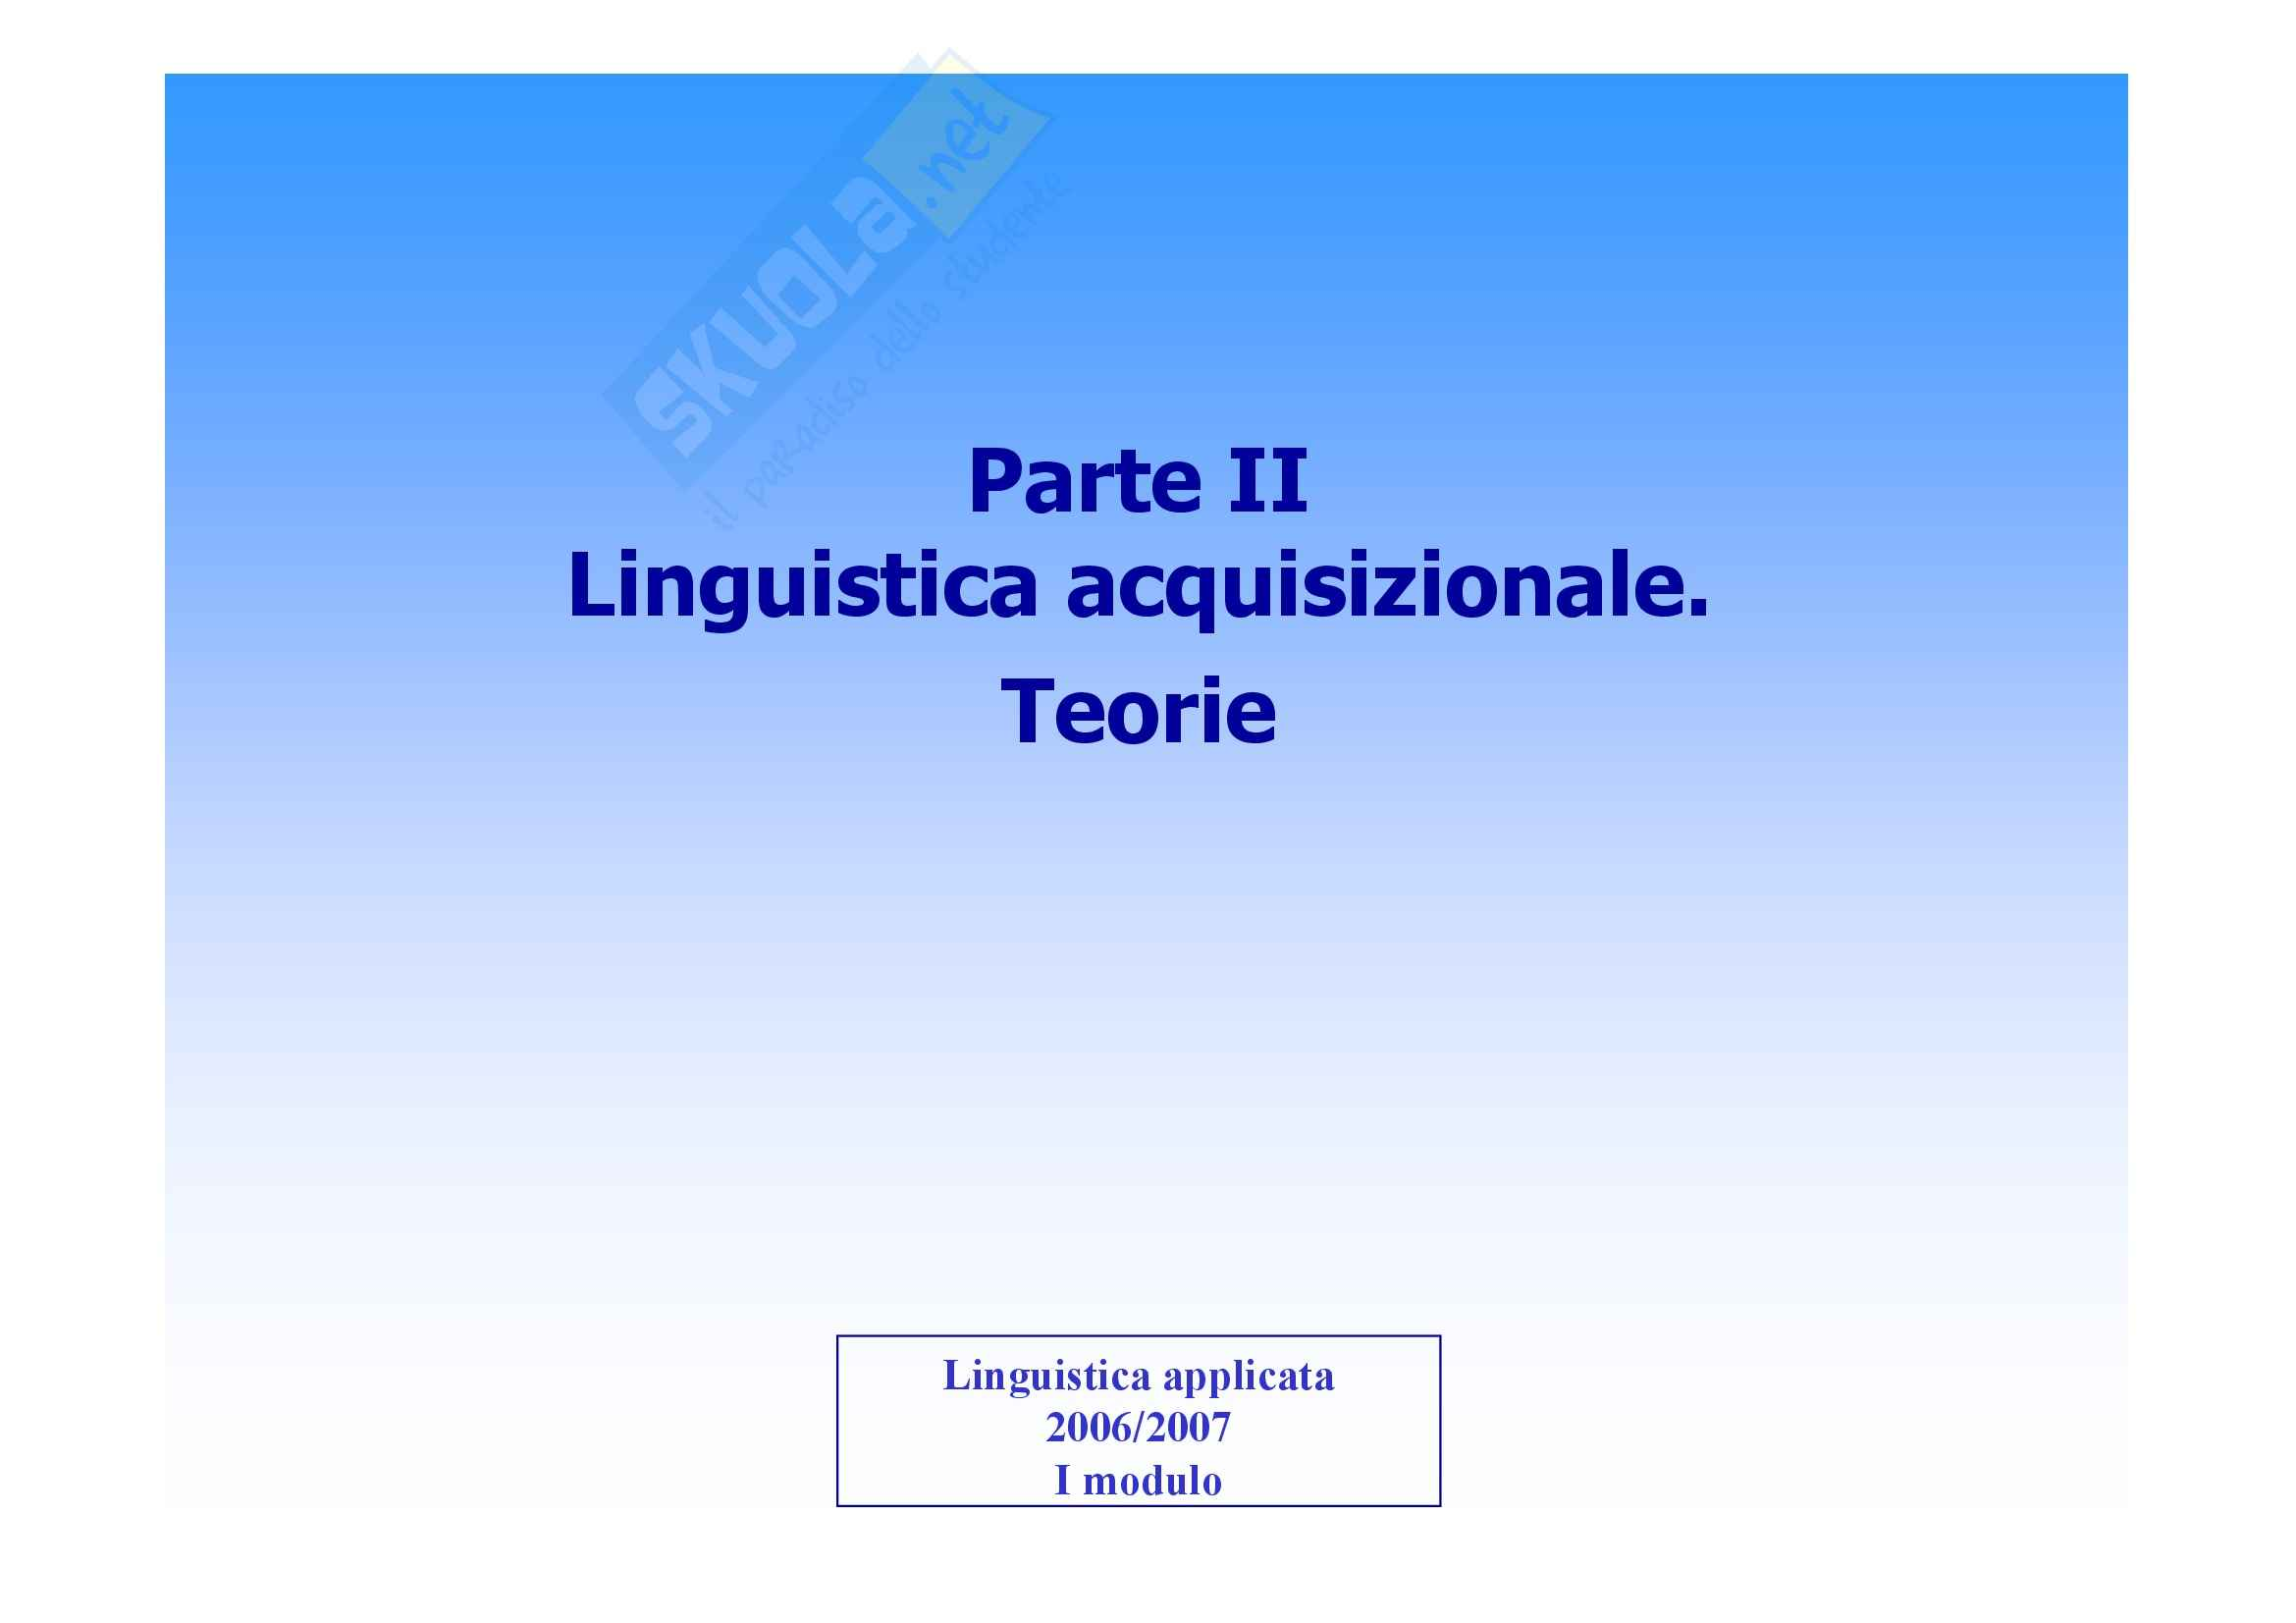 Linguistica applicata - Appunti ( seconda parte)